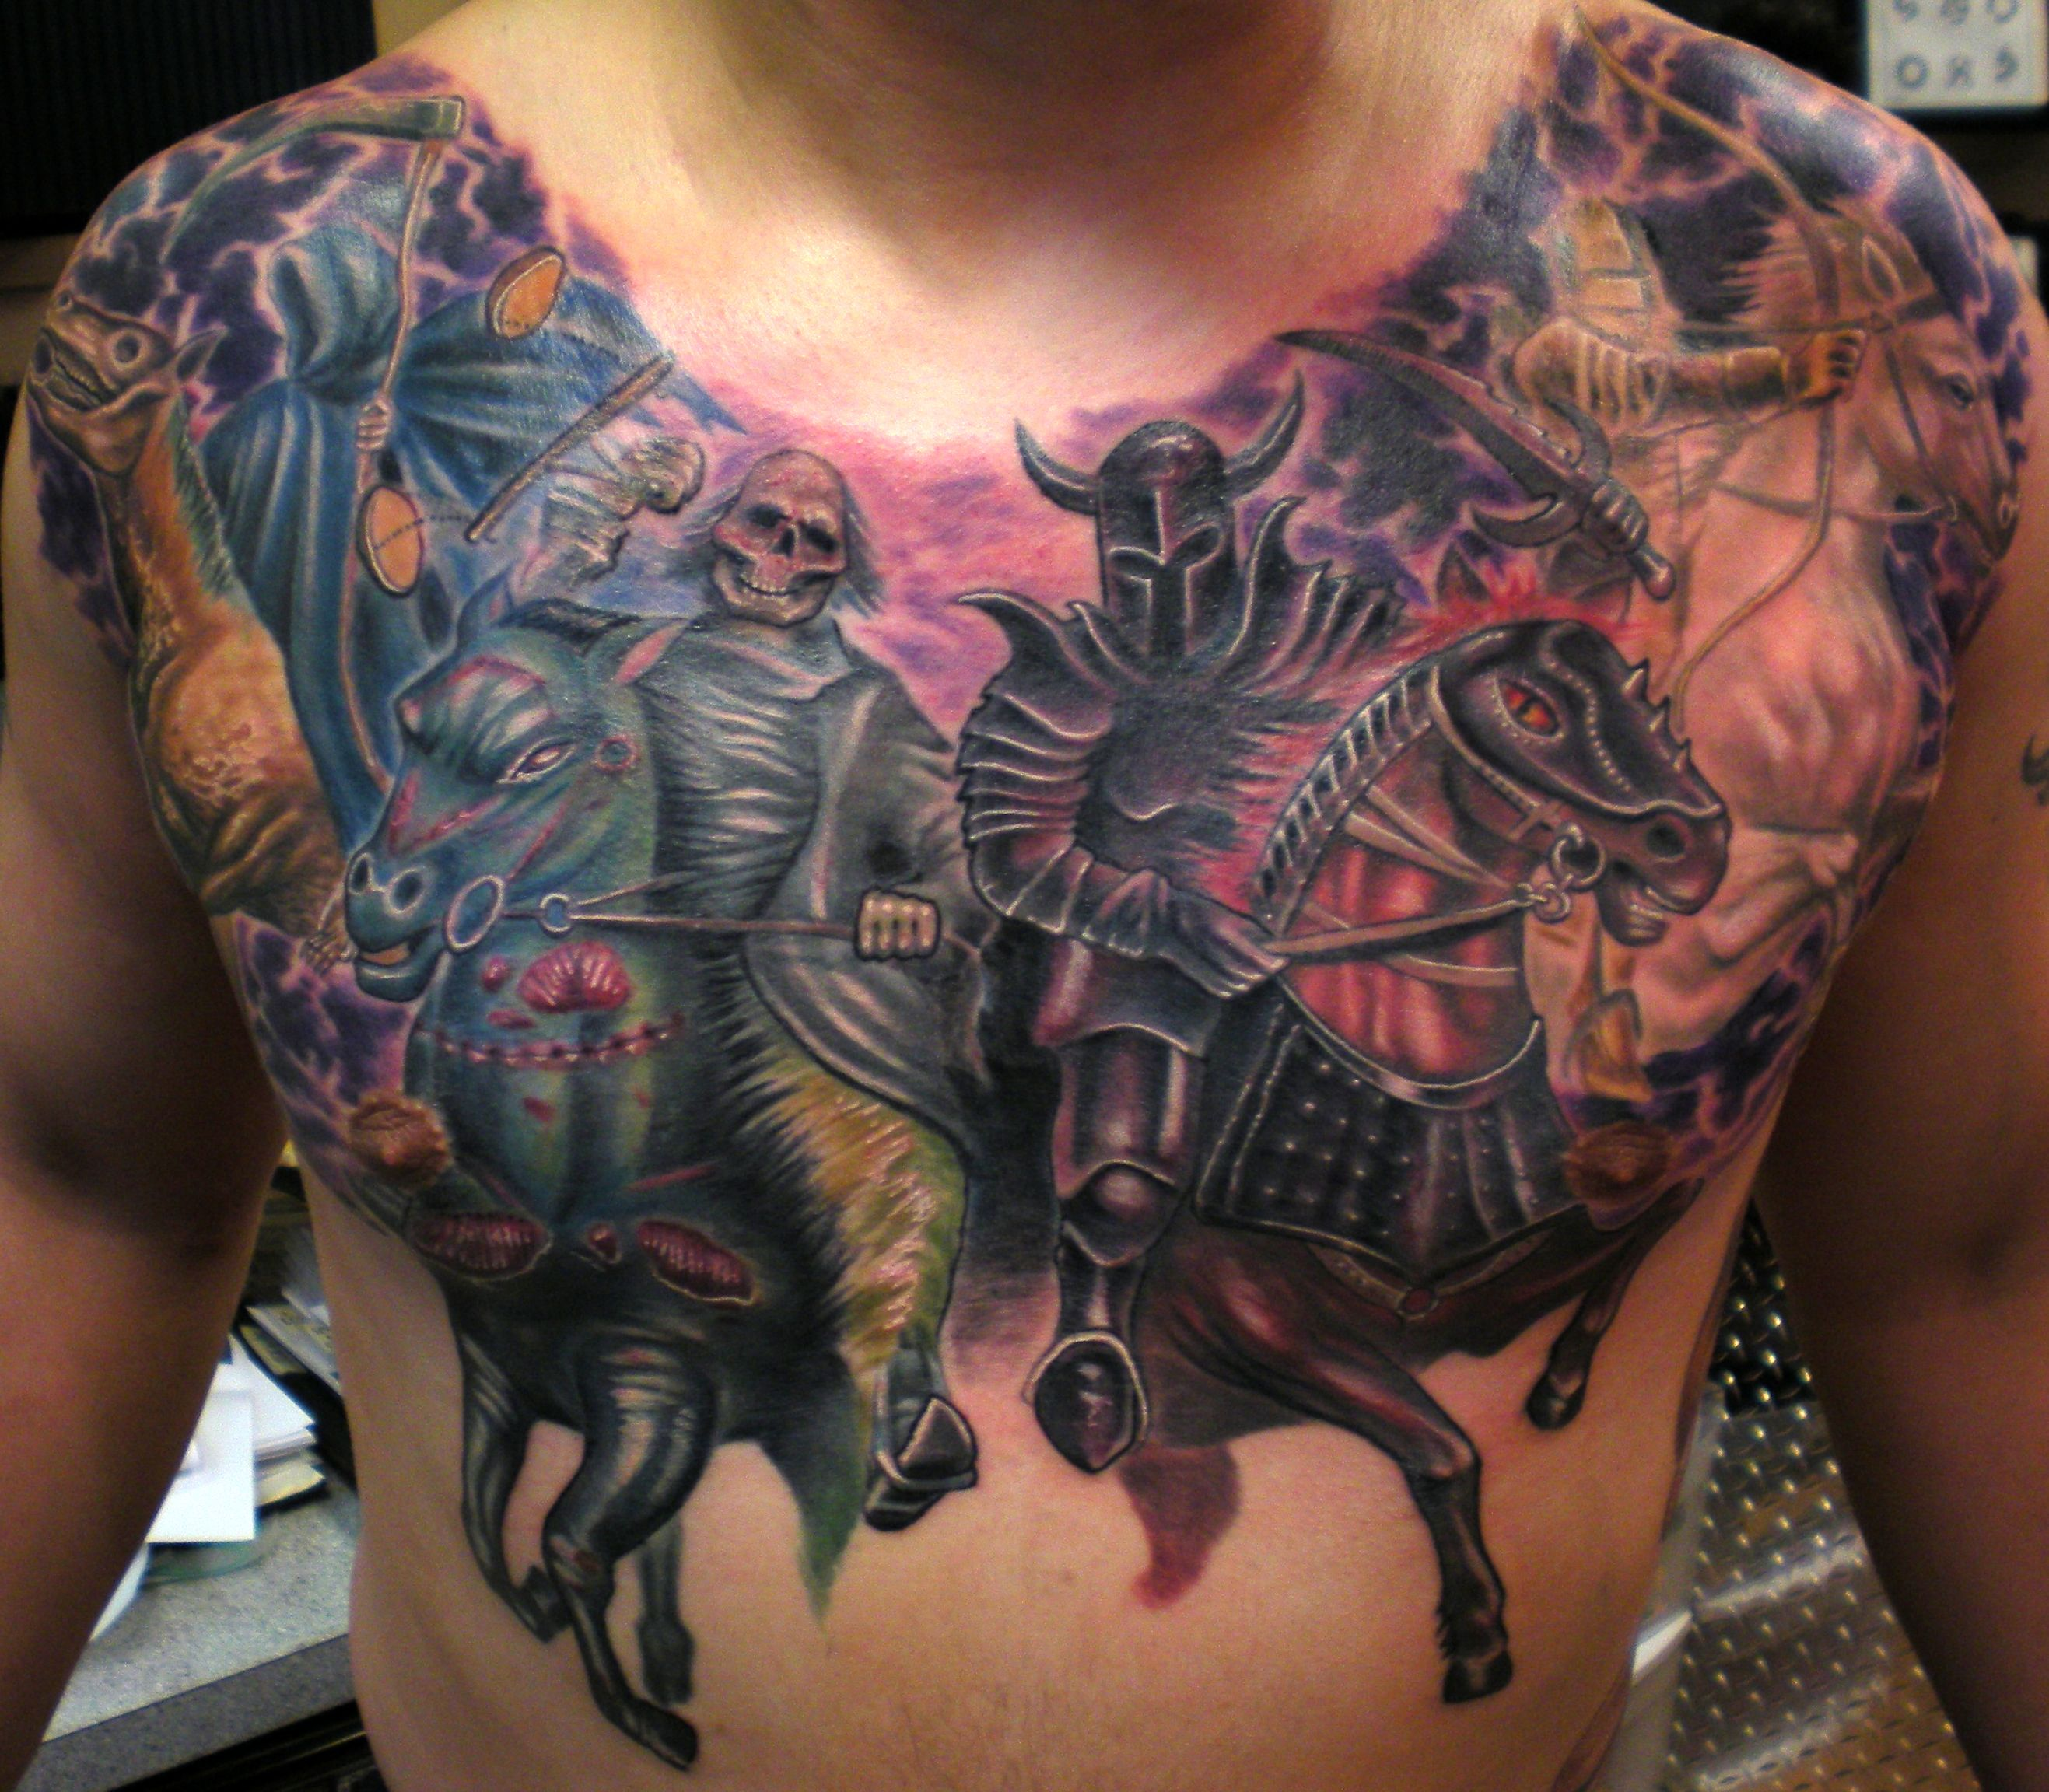 Four Horsemen Tattoos Pinterest Tattoos Chest Tattoo And